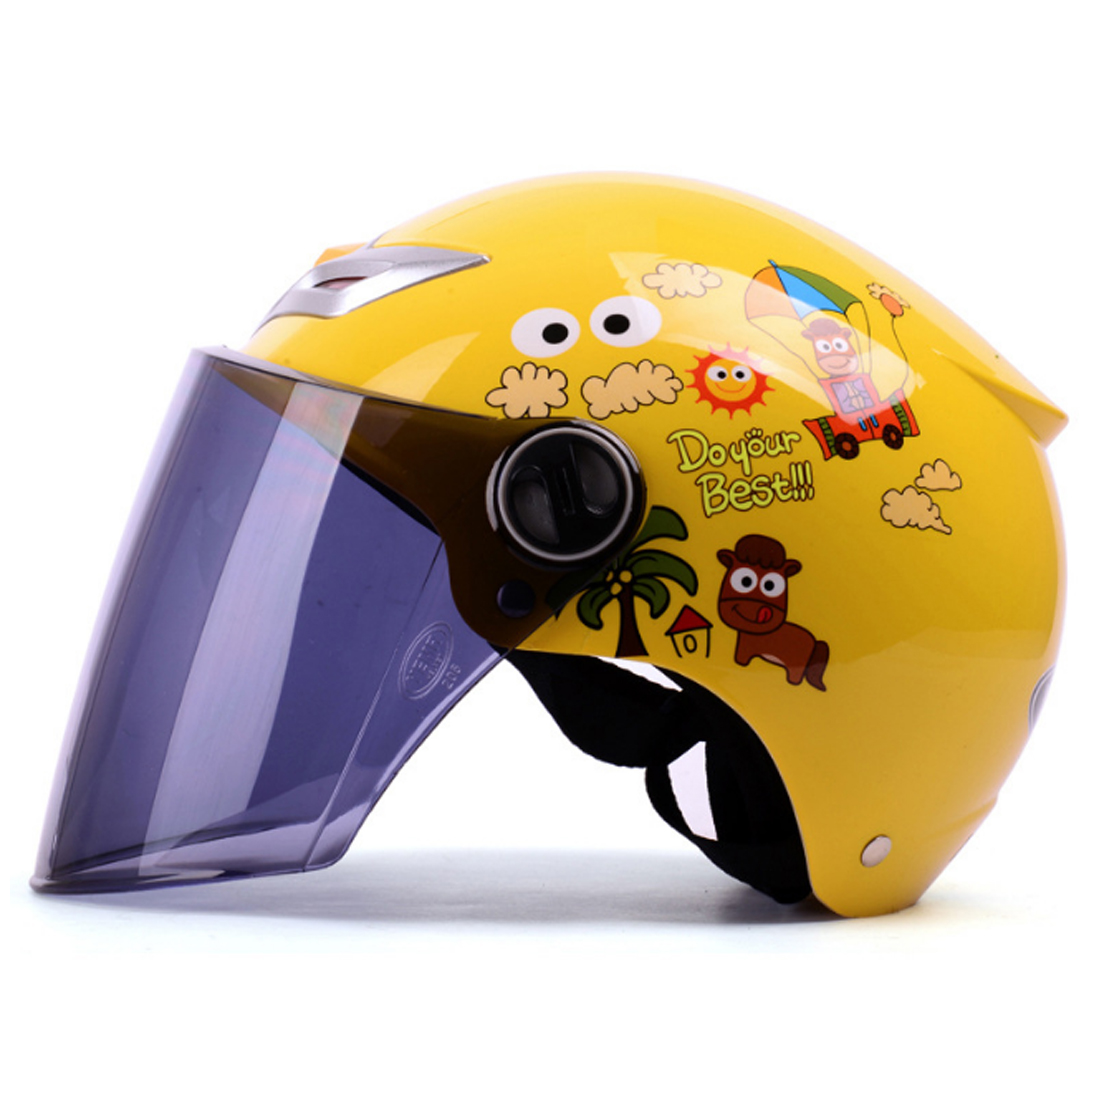 iguardor Head Protection Helmet Children Electrombile Safety Helmet with Face Guard - Lemon Yellow Holiday Horse Pattern Lens